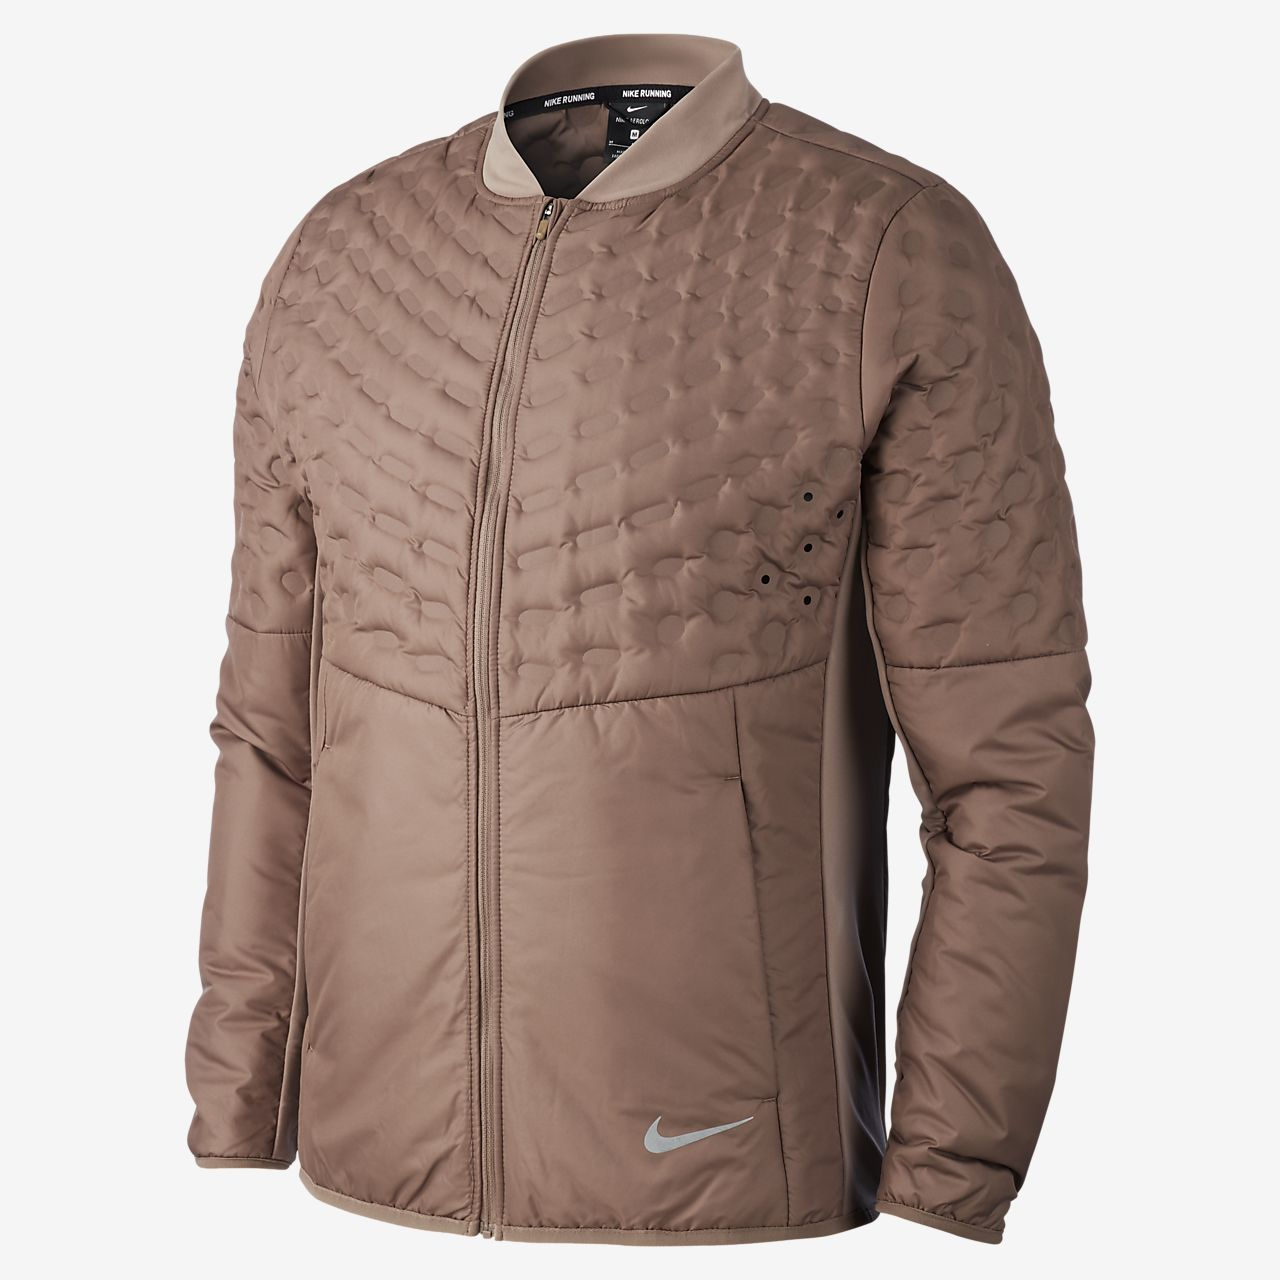 1de15cd4a1a0 Nike AeroLoft Men s Running Jacket. Nike.com GB